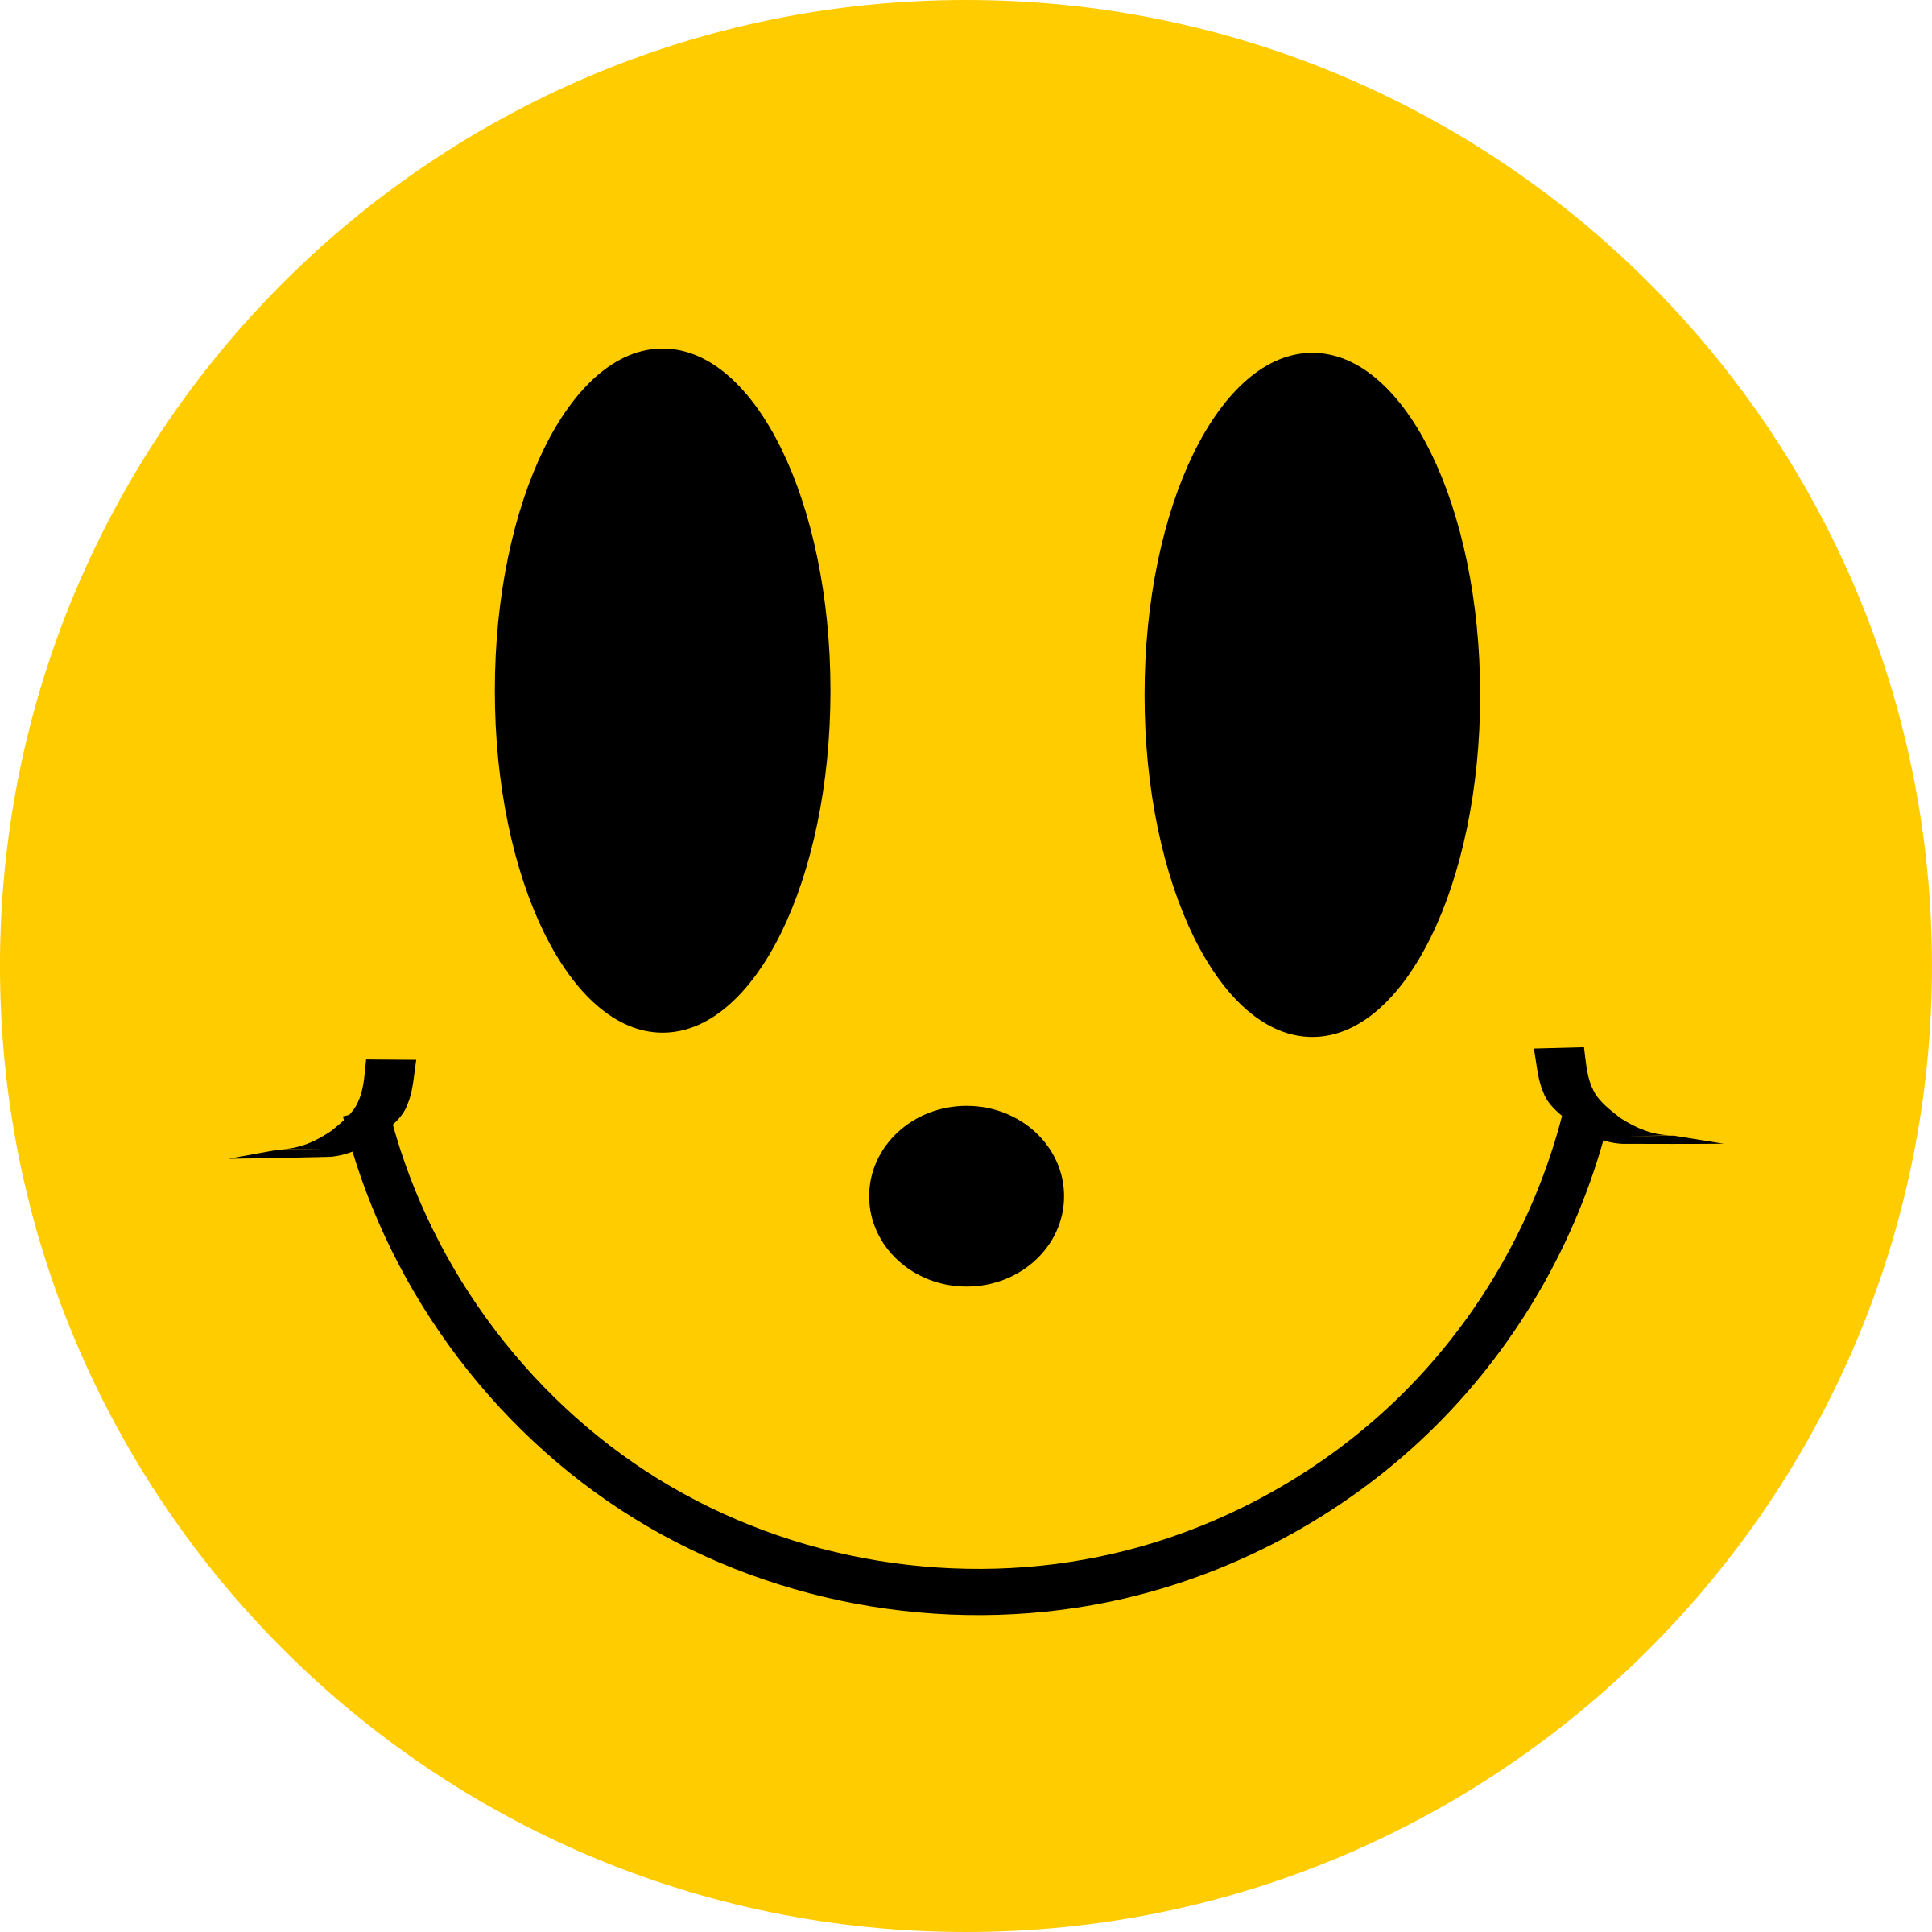 Happy smiley face png. Clipart simple flat smile